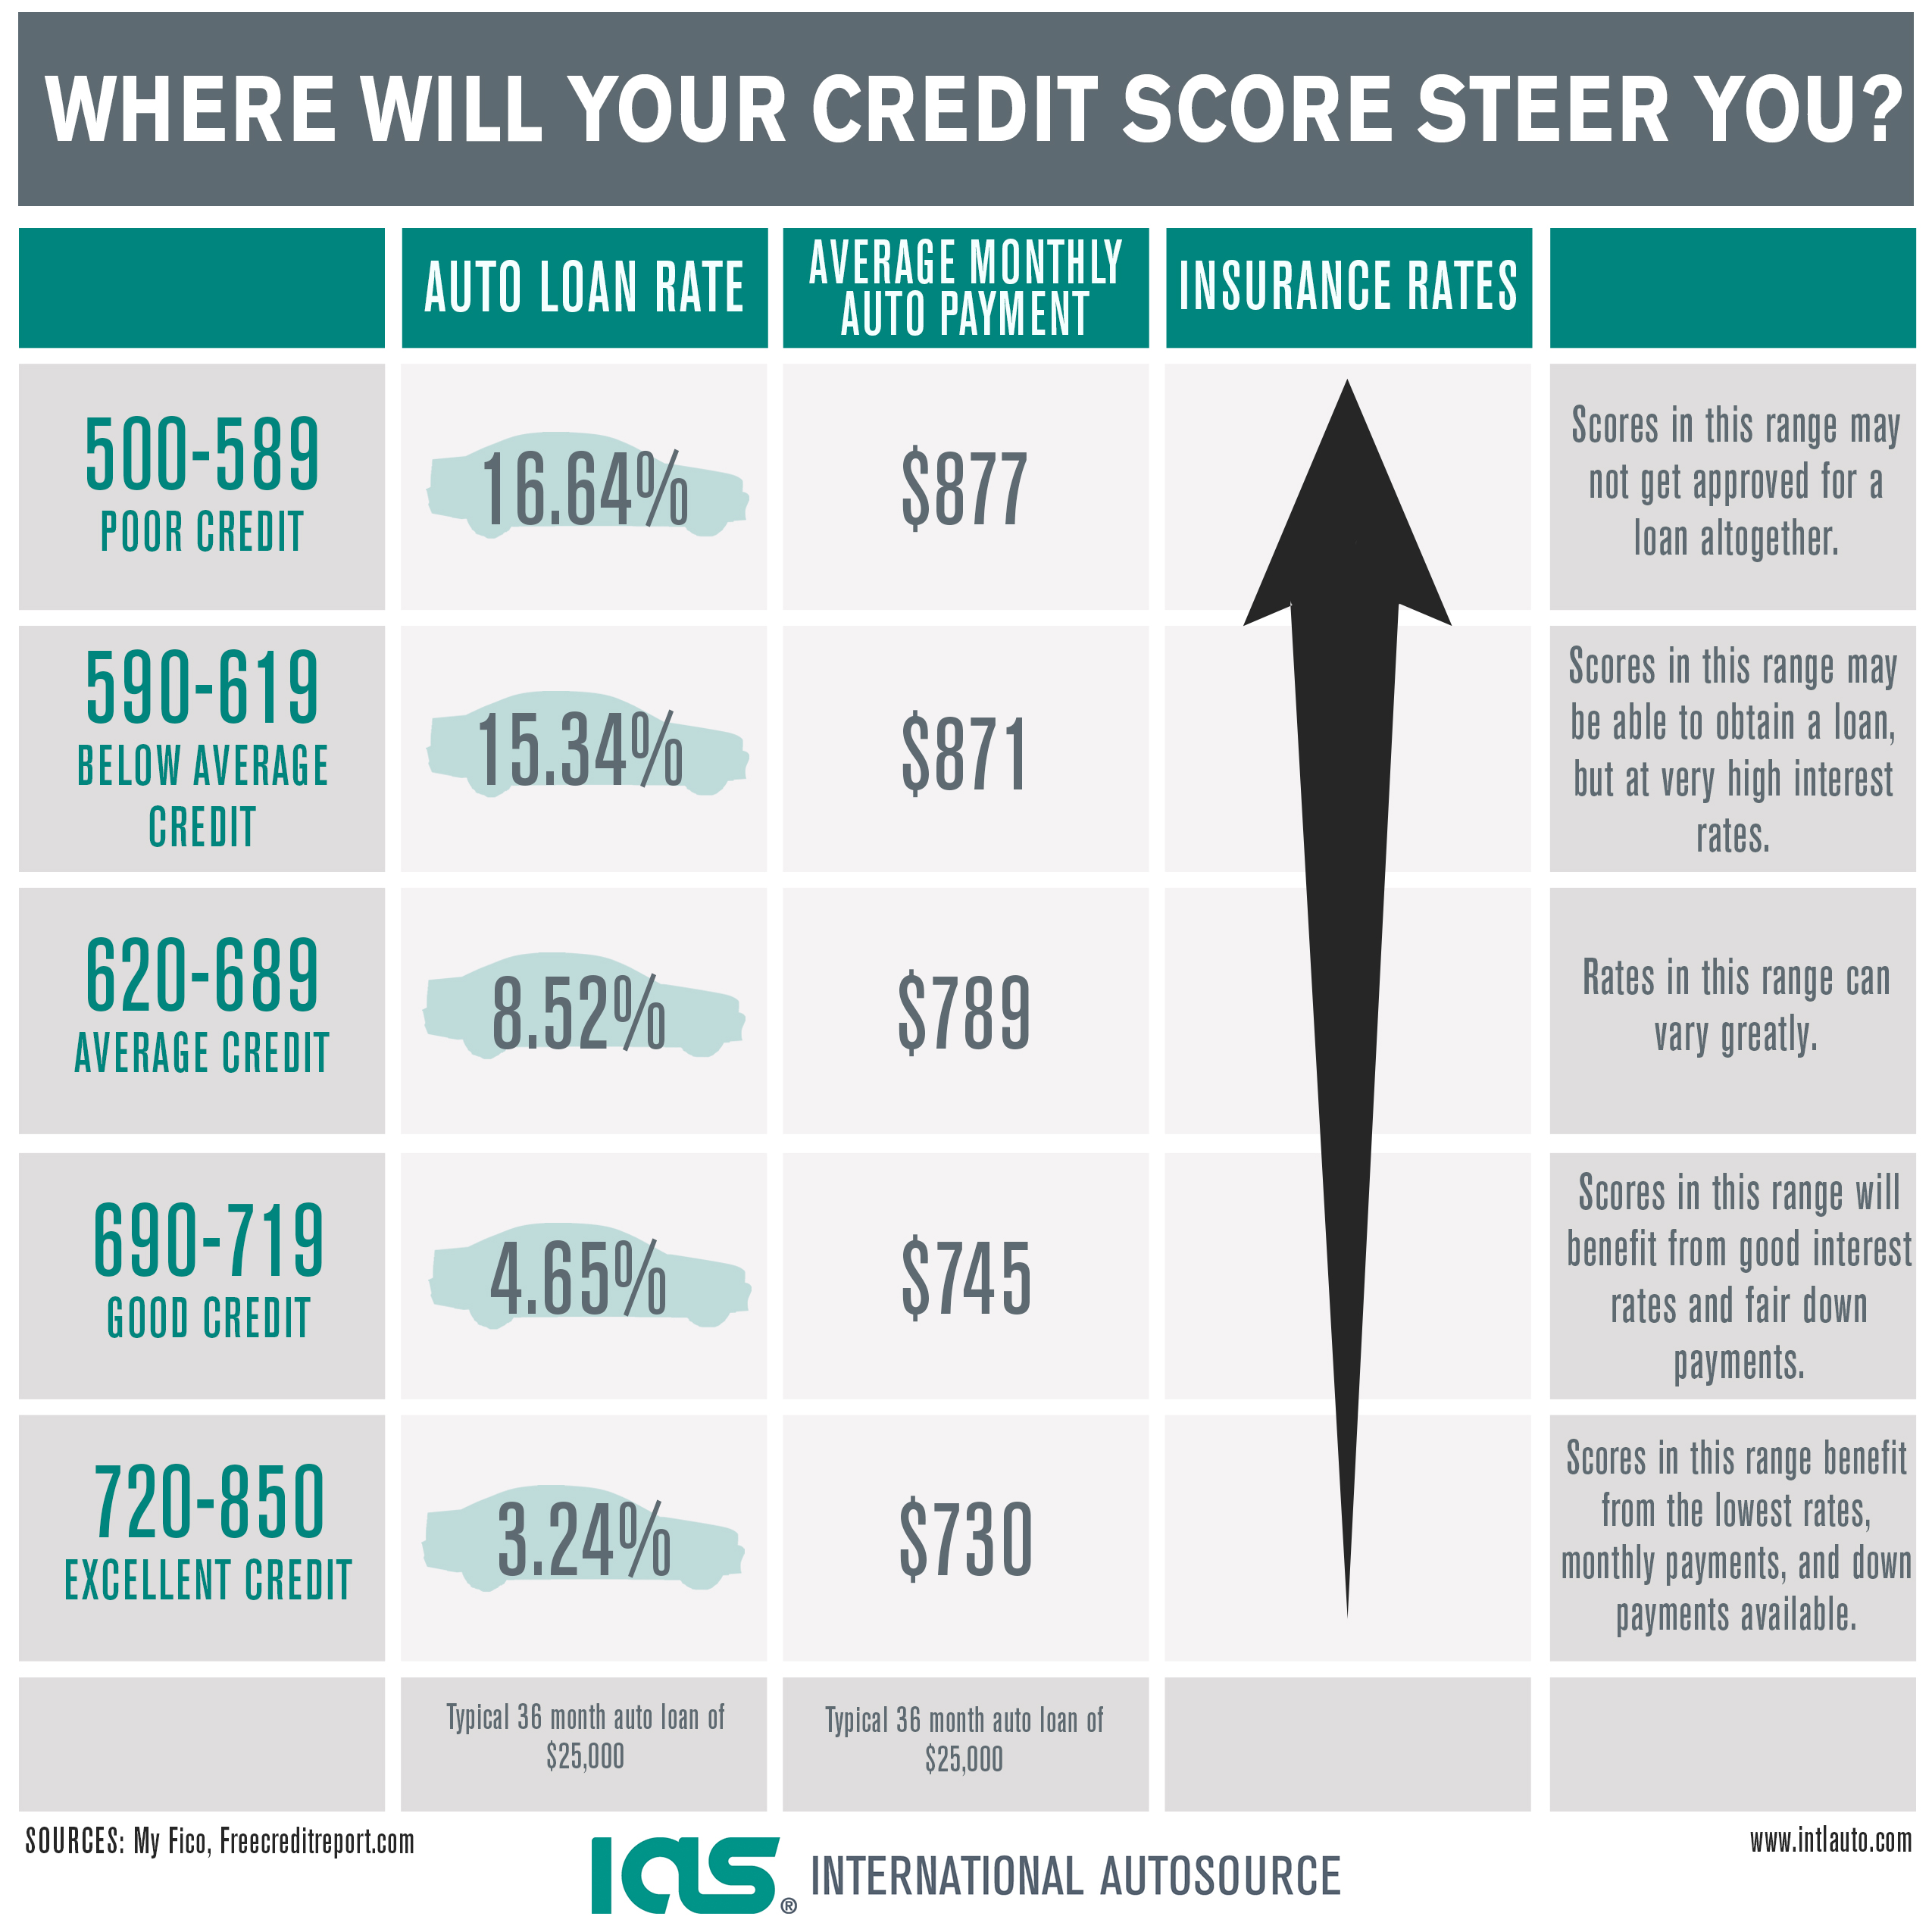 Credit Score Needed For A Home Loan. Low Credit Score FHA